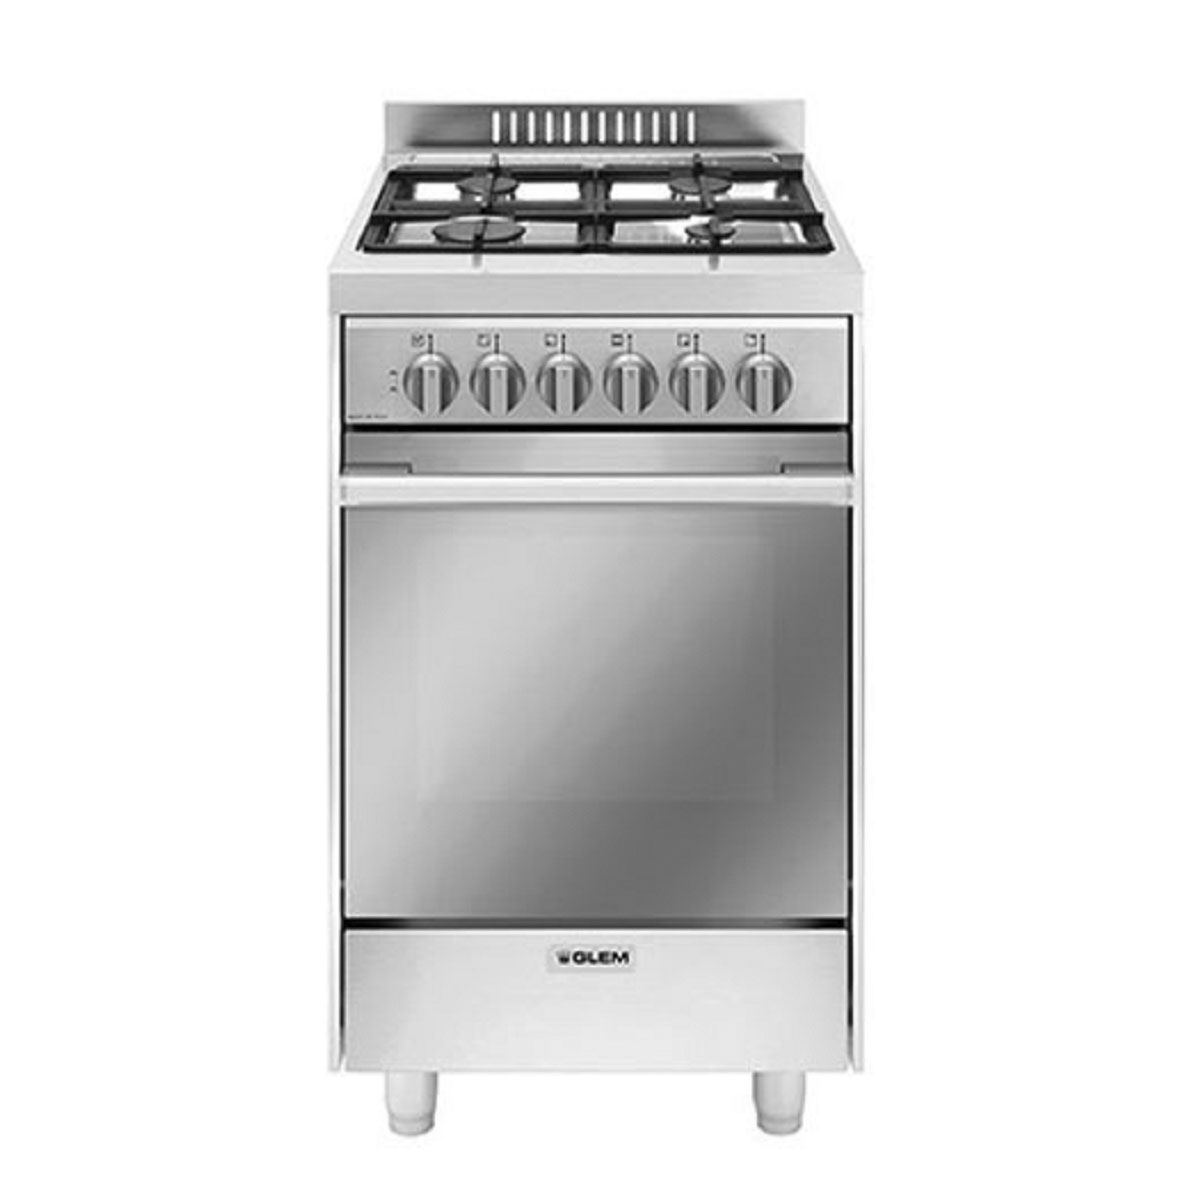 Glem GL53EI Freestanding Dual Fuel Oven/Stove